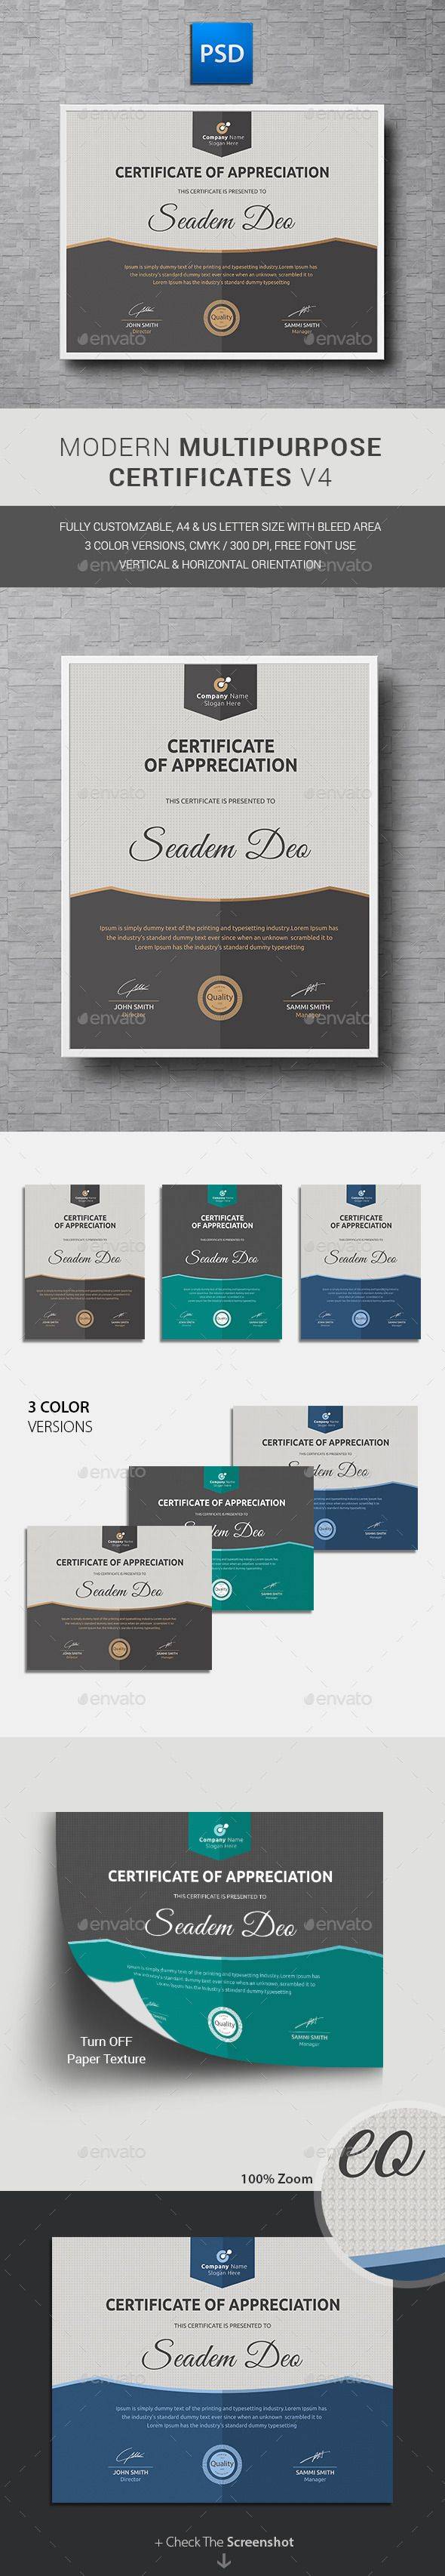 Modern Multipurpose Certificates Template PSD. Download here: http://graphicriver.net/item/modern-multipurpose-certificates/11950362?ref=ksioks